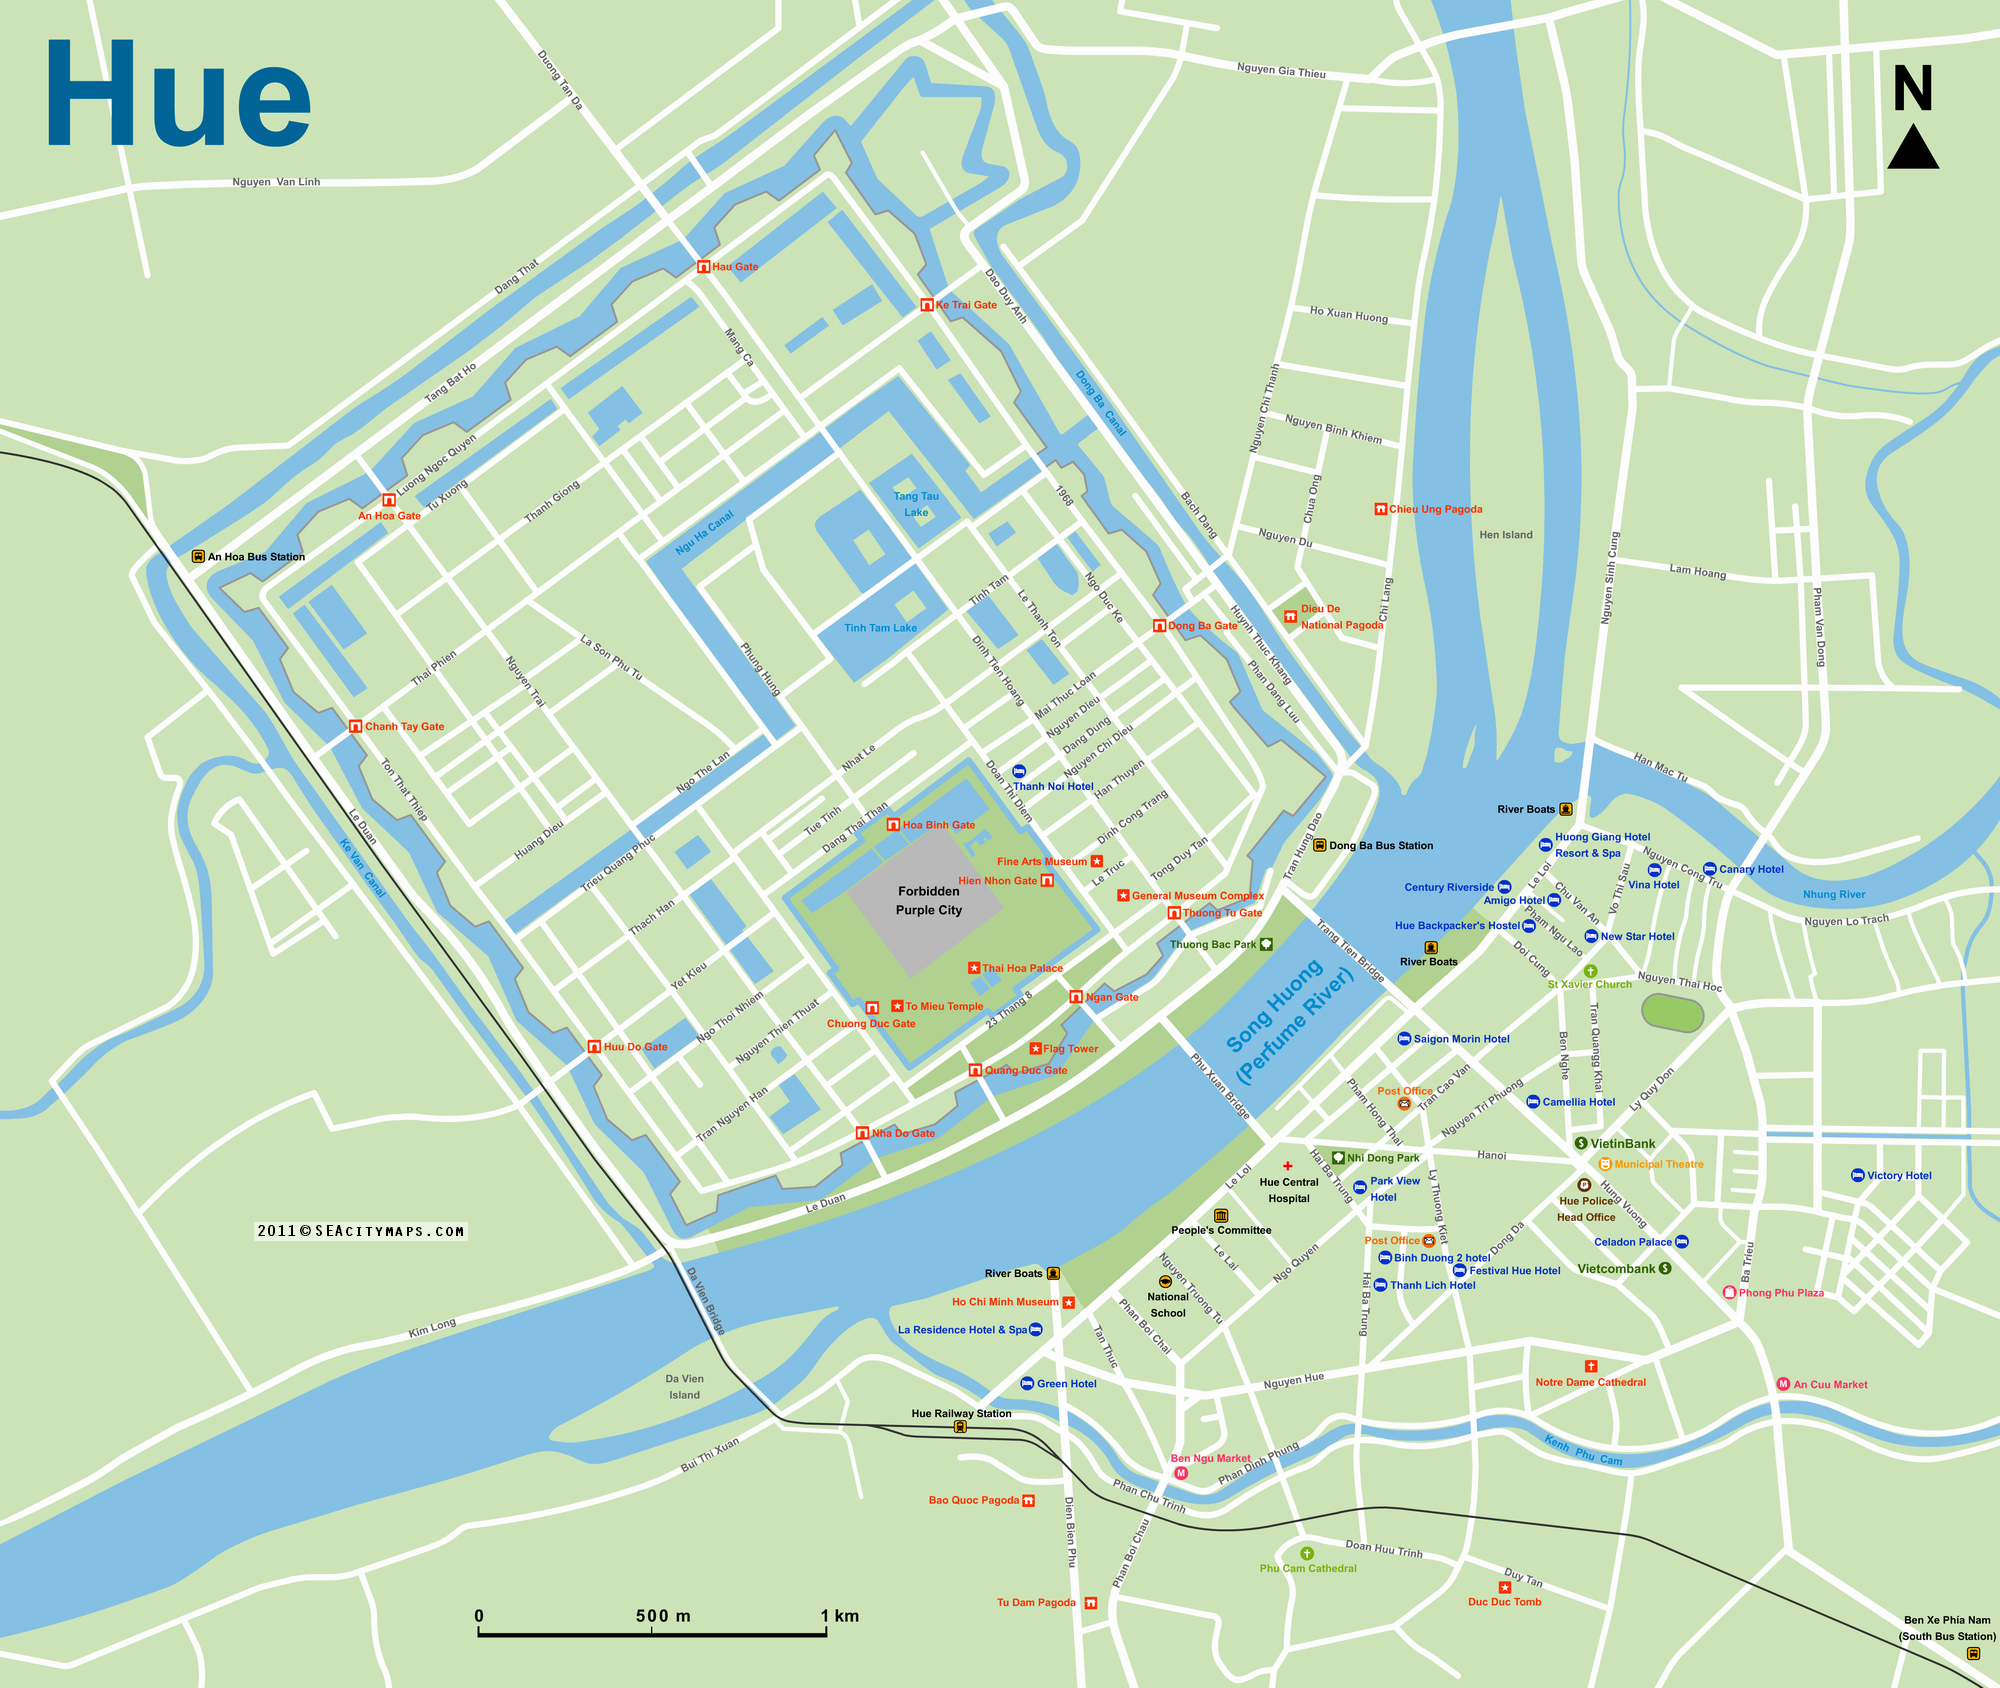 map of Hue, Vietnam